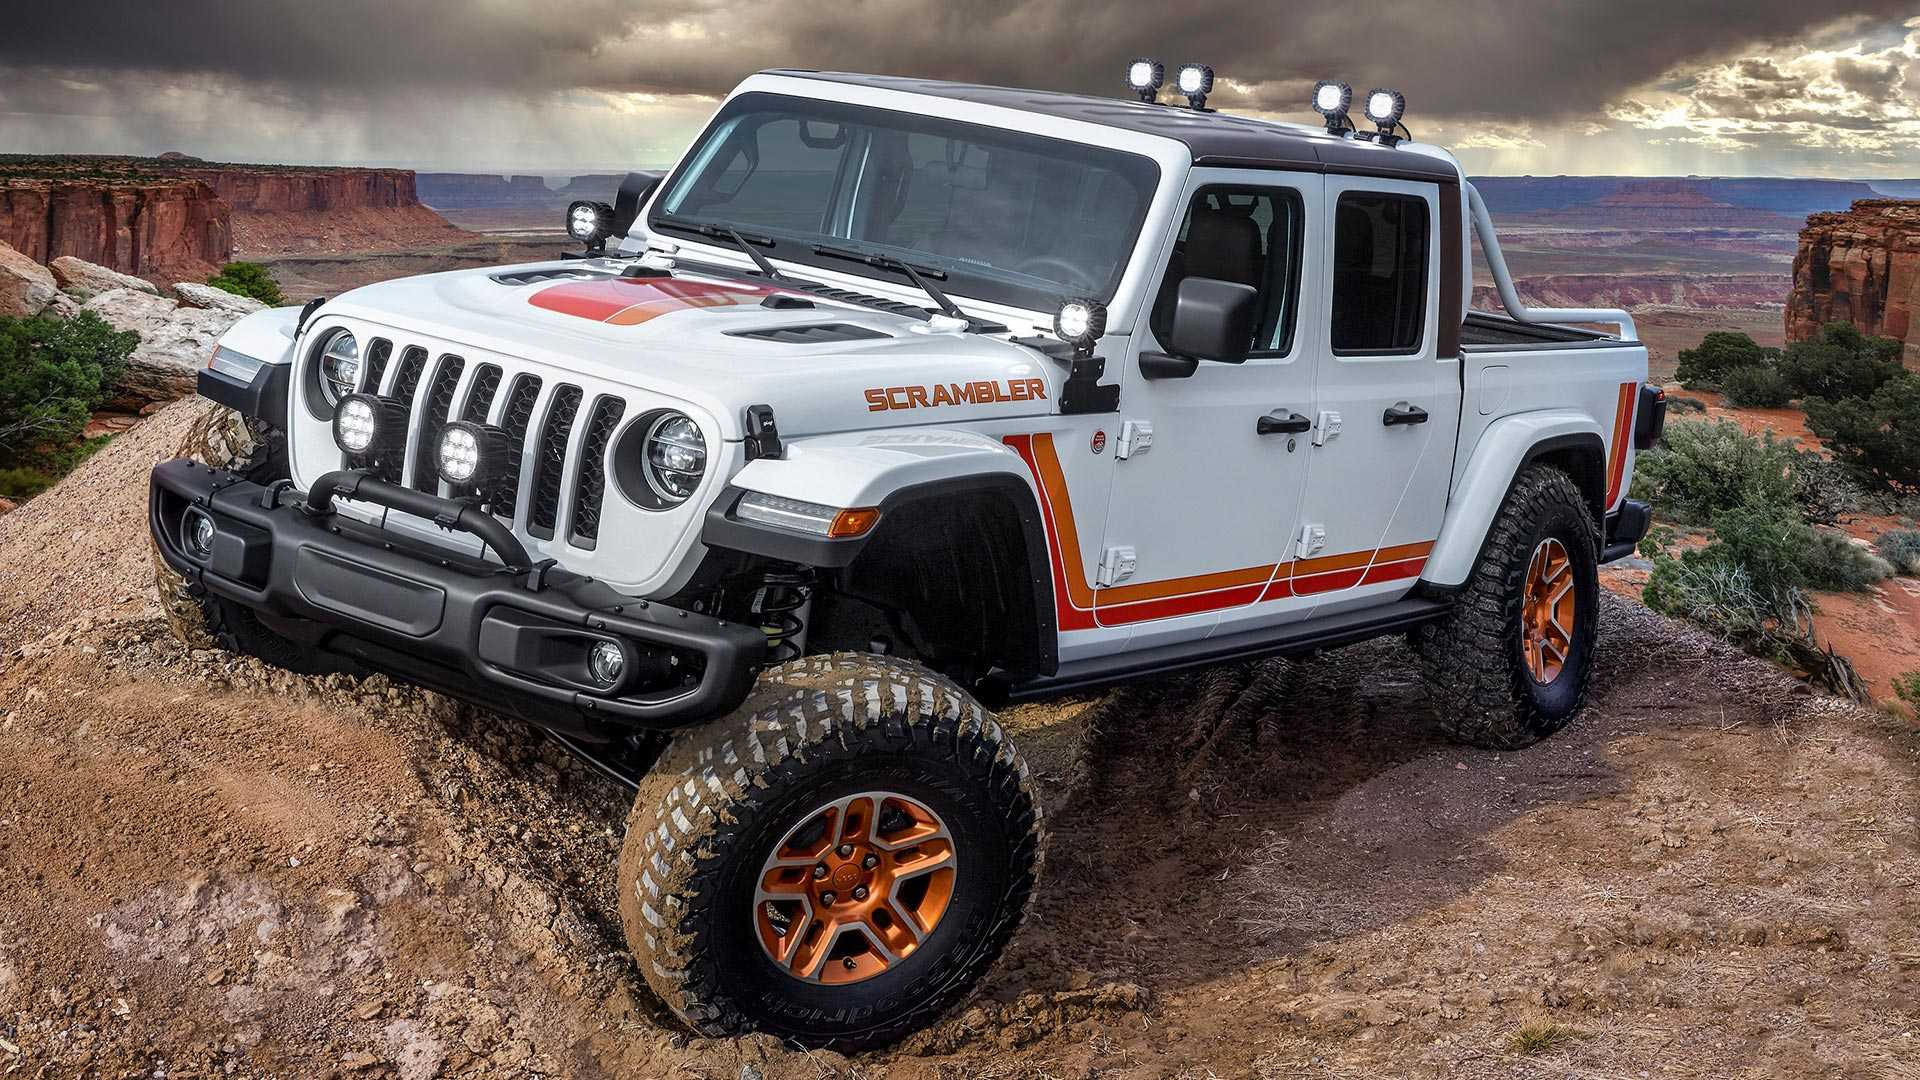 Jeep Gladiator JT Scrambler Concept Takes A Stroll Off-Road